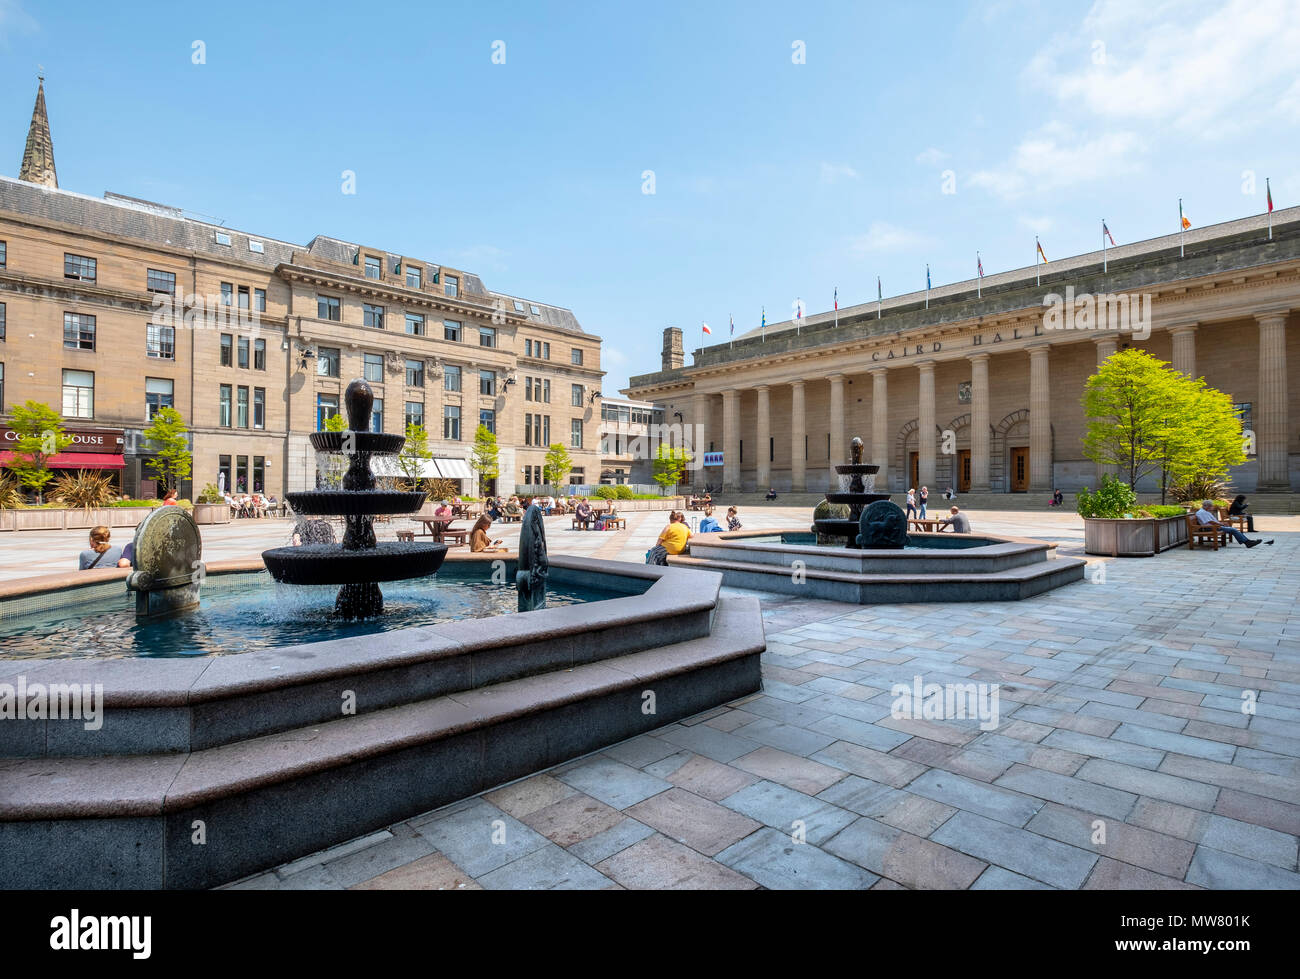 View of the Caird Hall in City Square, Dundee, Scotland, UK - Stock Image